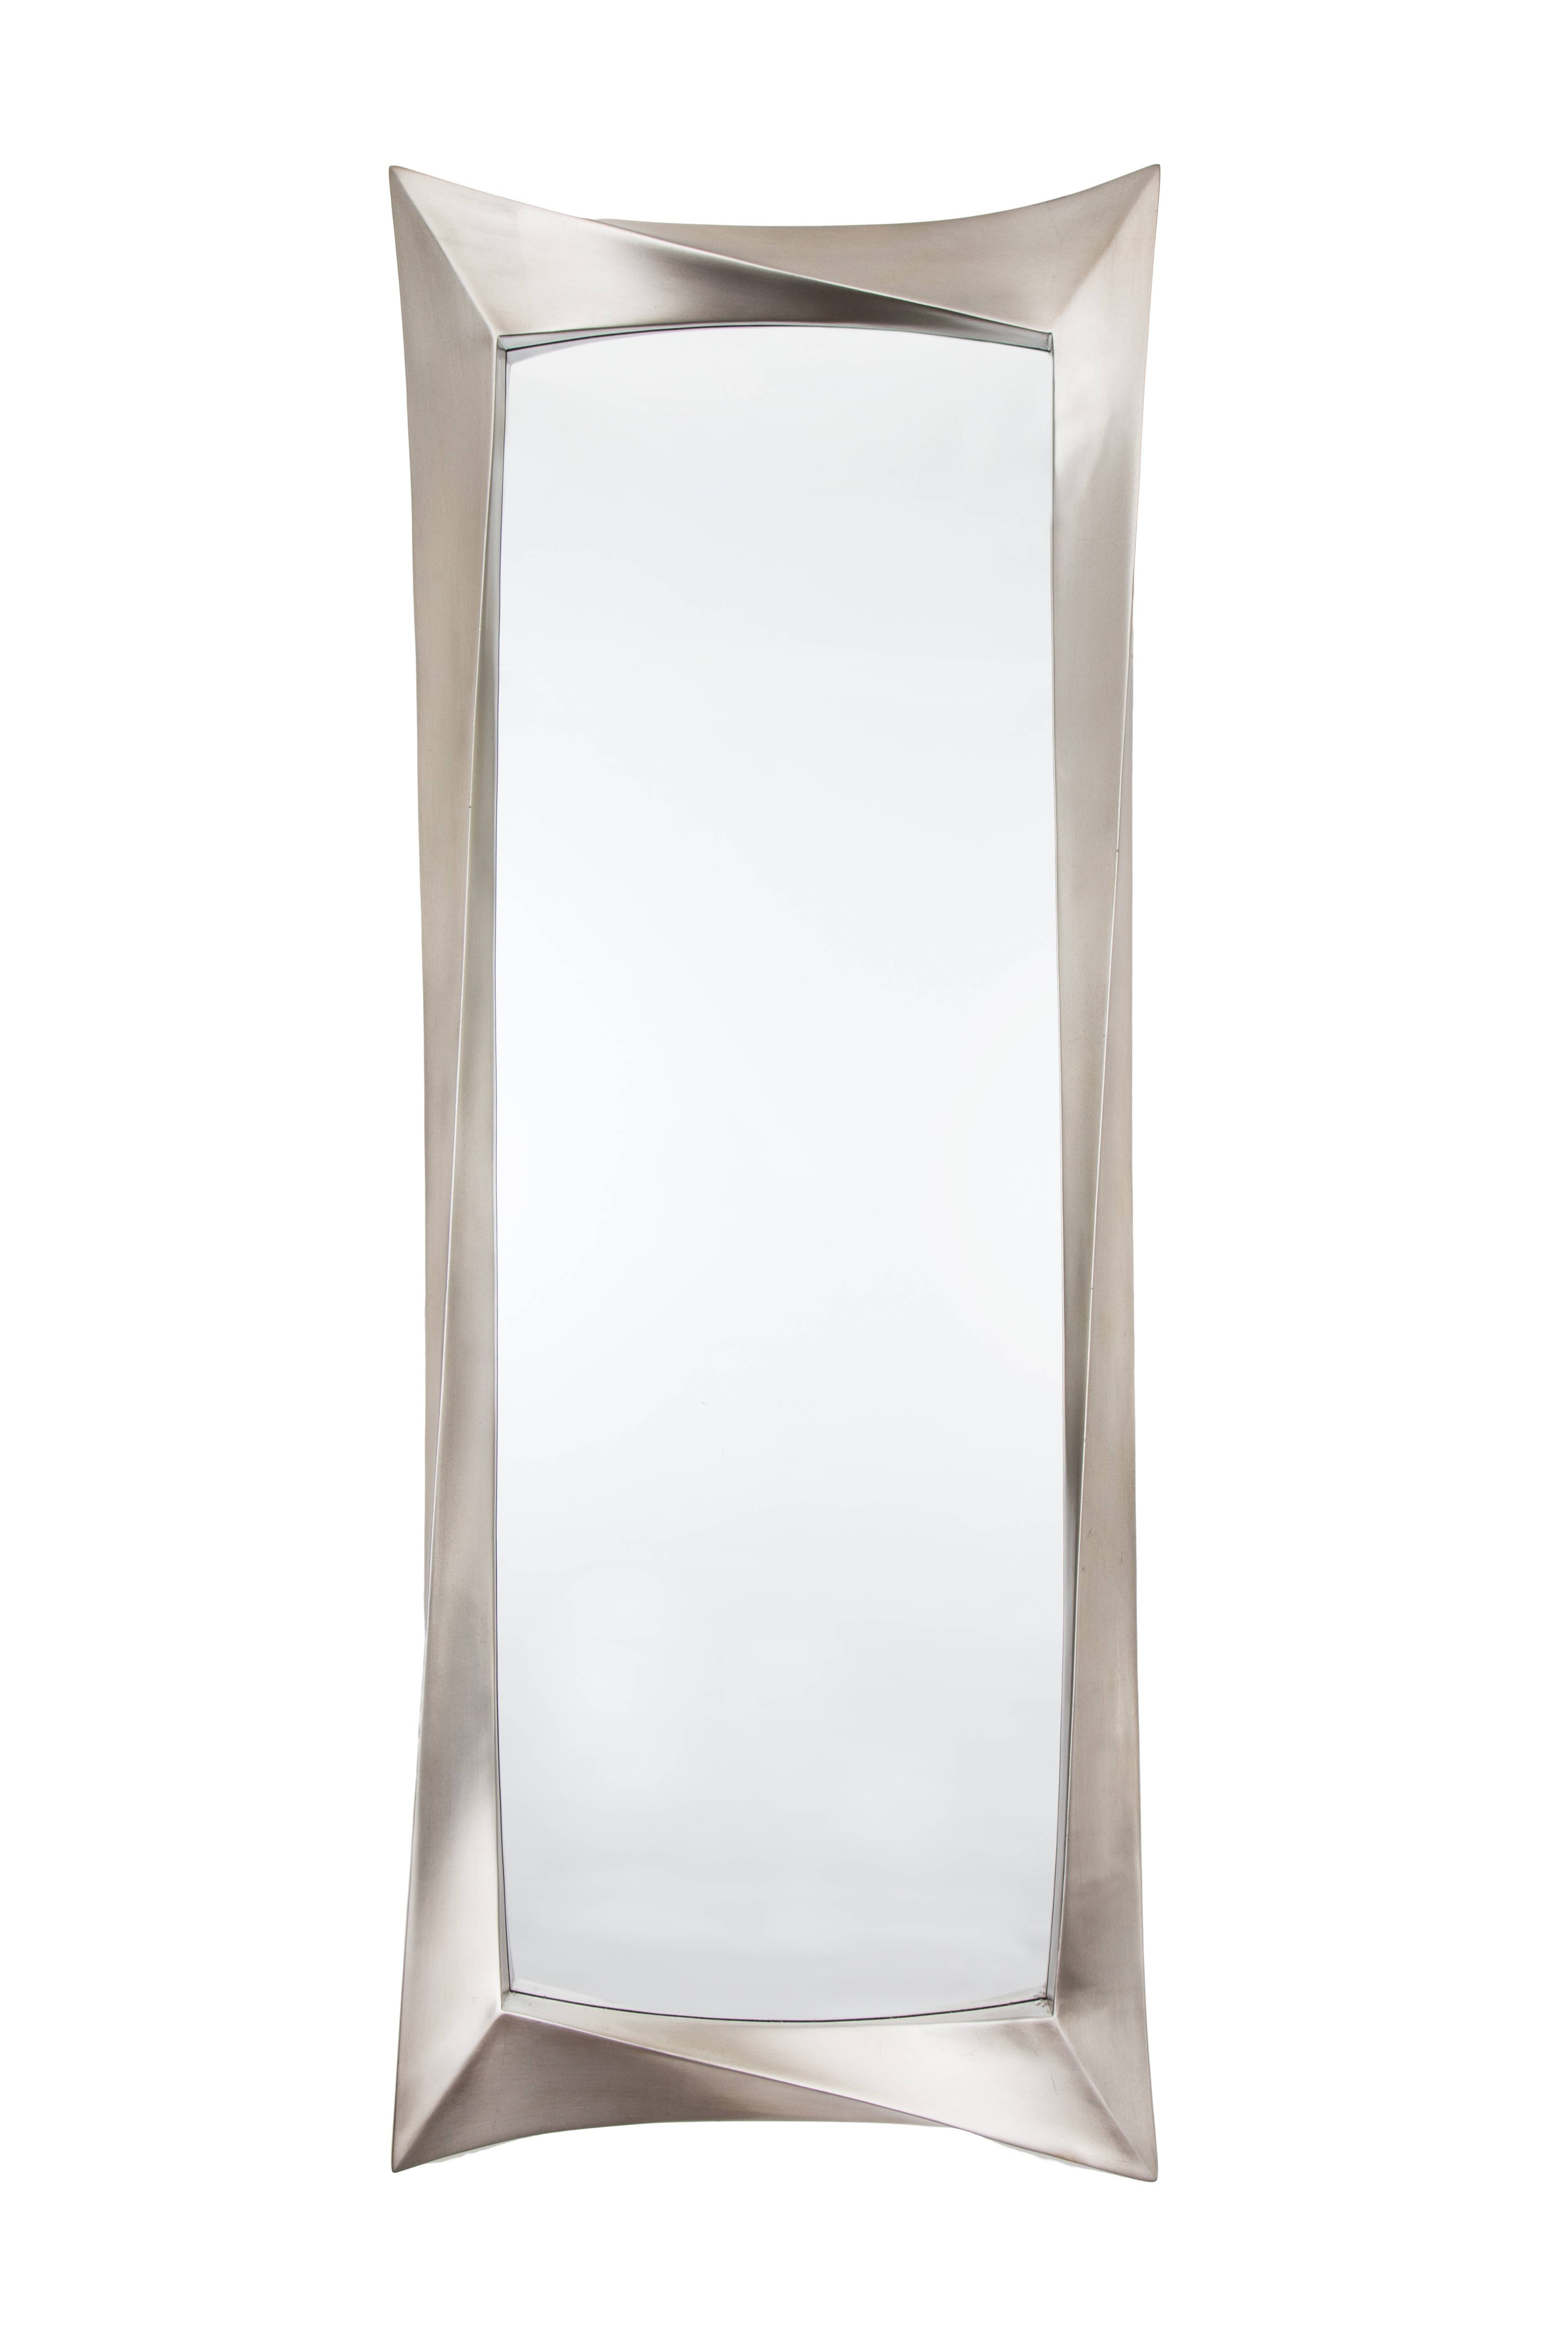 Terrific Wall Design Long Wall Mirrors For Trendy Wall Full Length intended for Long Silver Mirrors (Image 12 of 15)